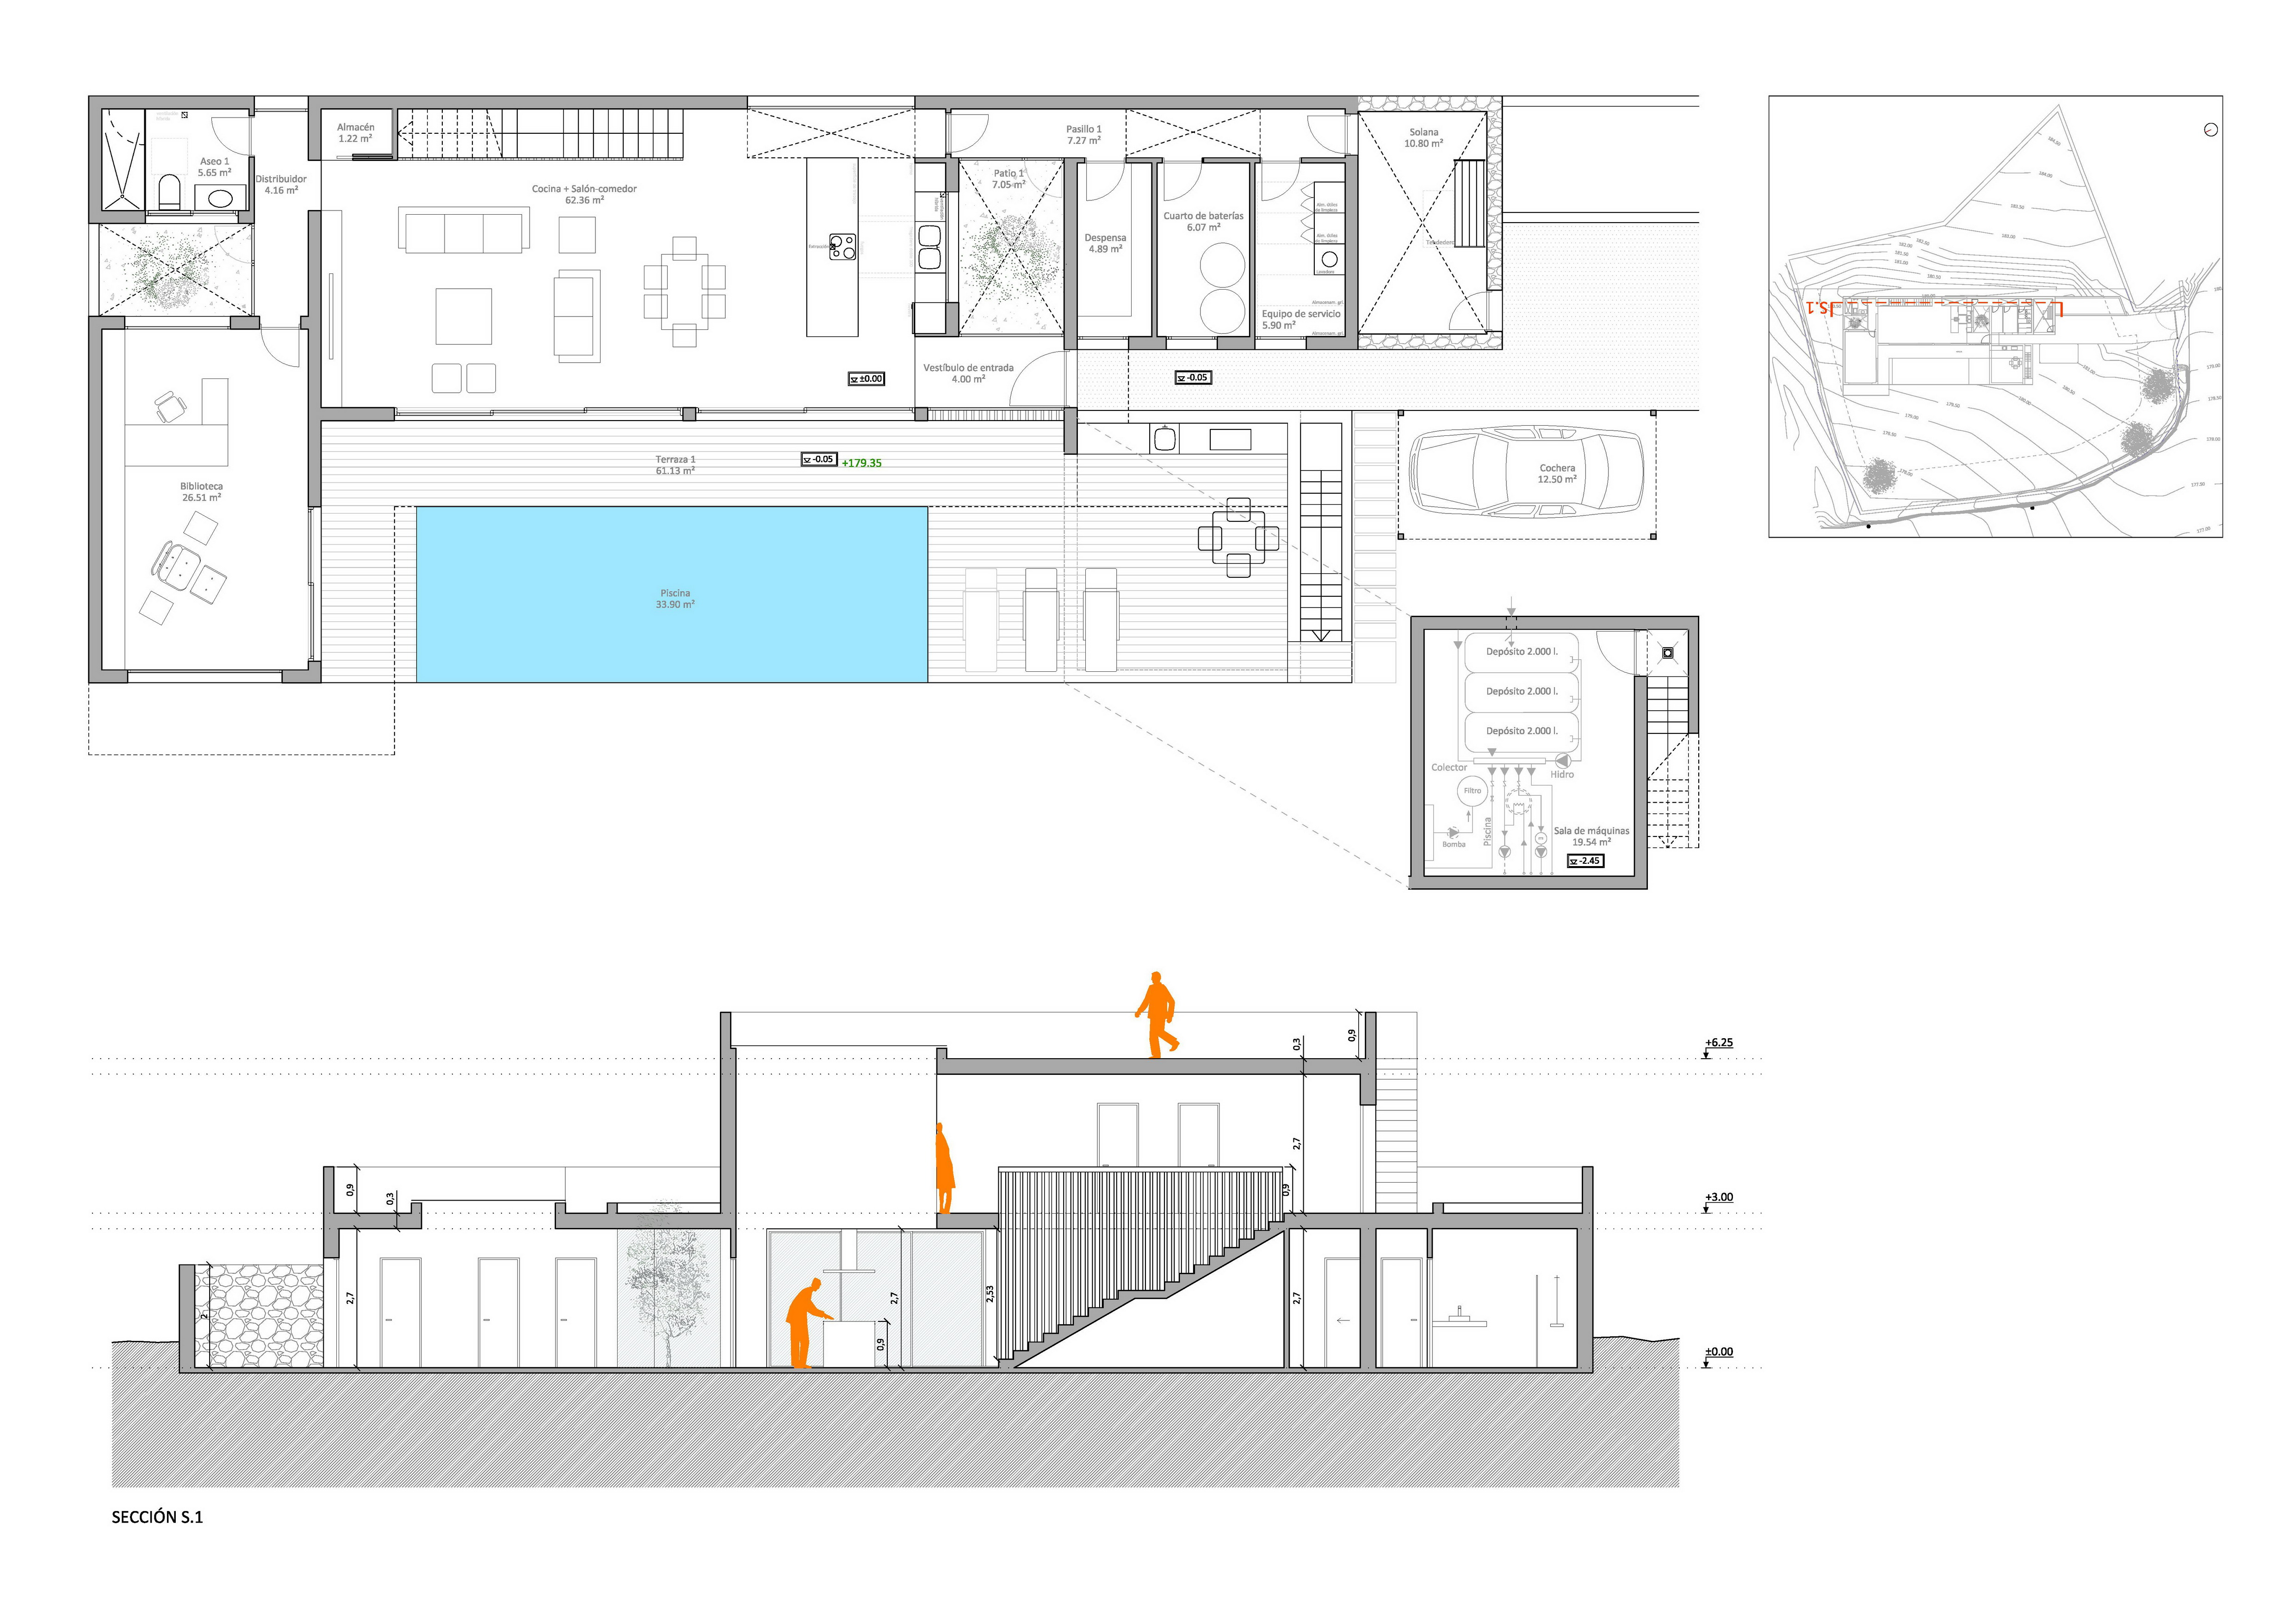 Plans EA 1909 2 ground floor section s1